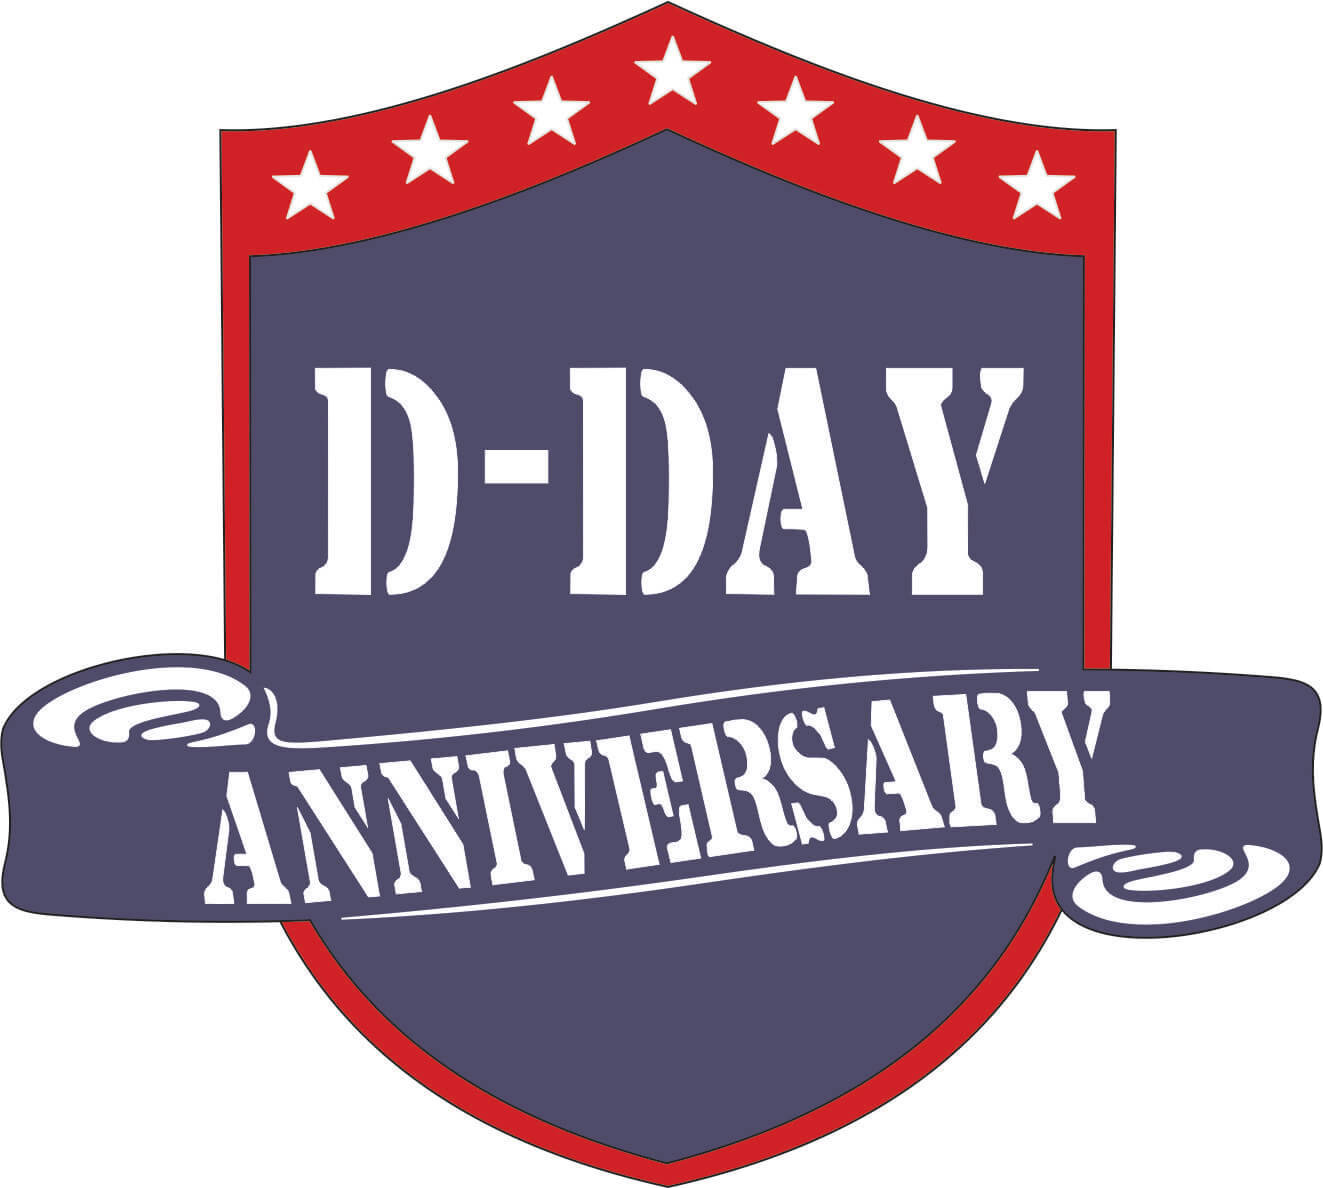 Dday clipart vector royalty free D-Day Anniversary vector royalty free